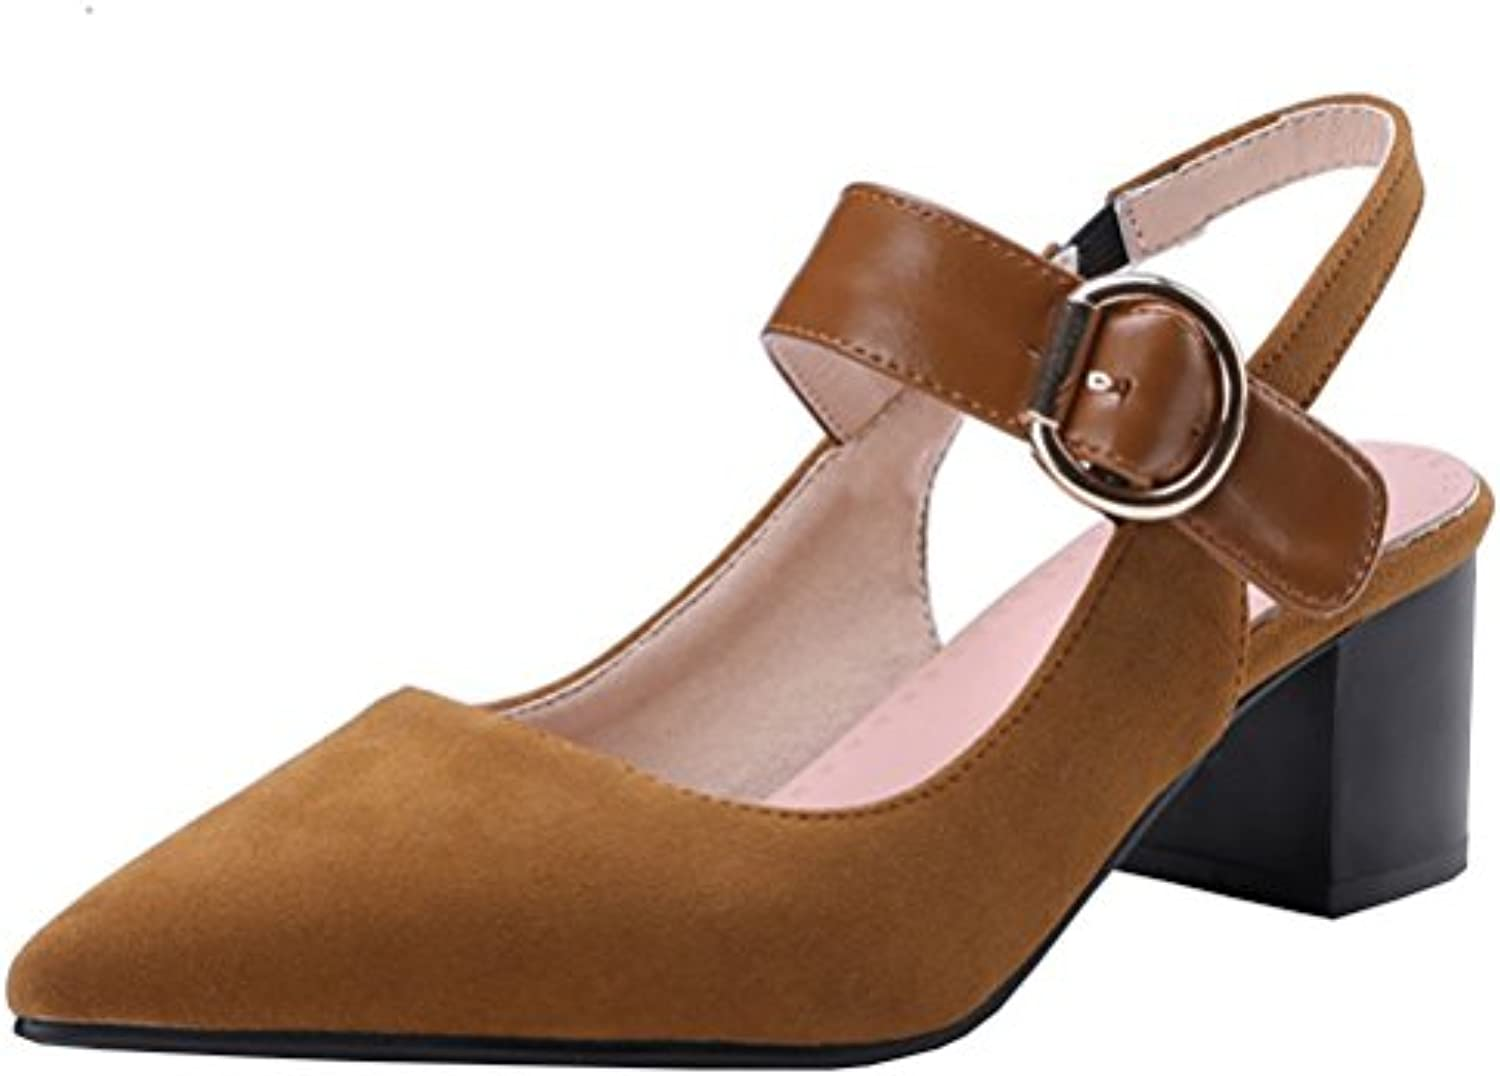 0e6f5ac7b53 Atyche Women s Ankle Shoes Mid Heels Mary Janes Sandals Ankle Strap Court  Shoes Slingback Pointed Toe Sandals Summer Pumps B07BT4C38X Parent 95ff66d